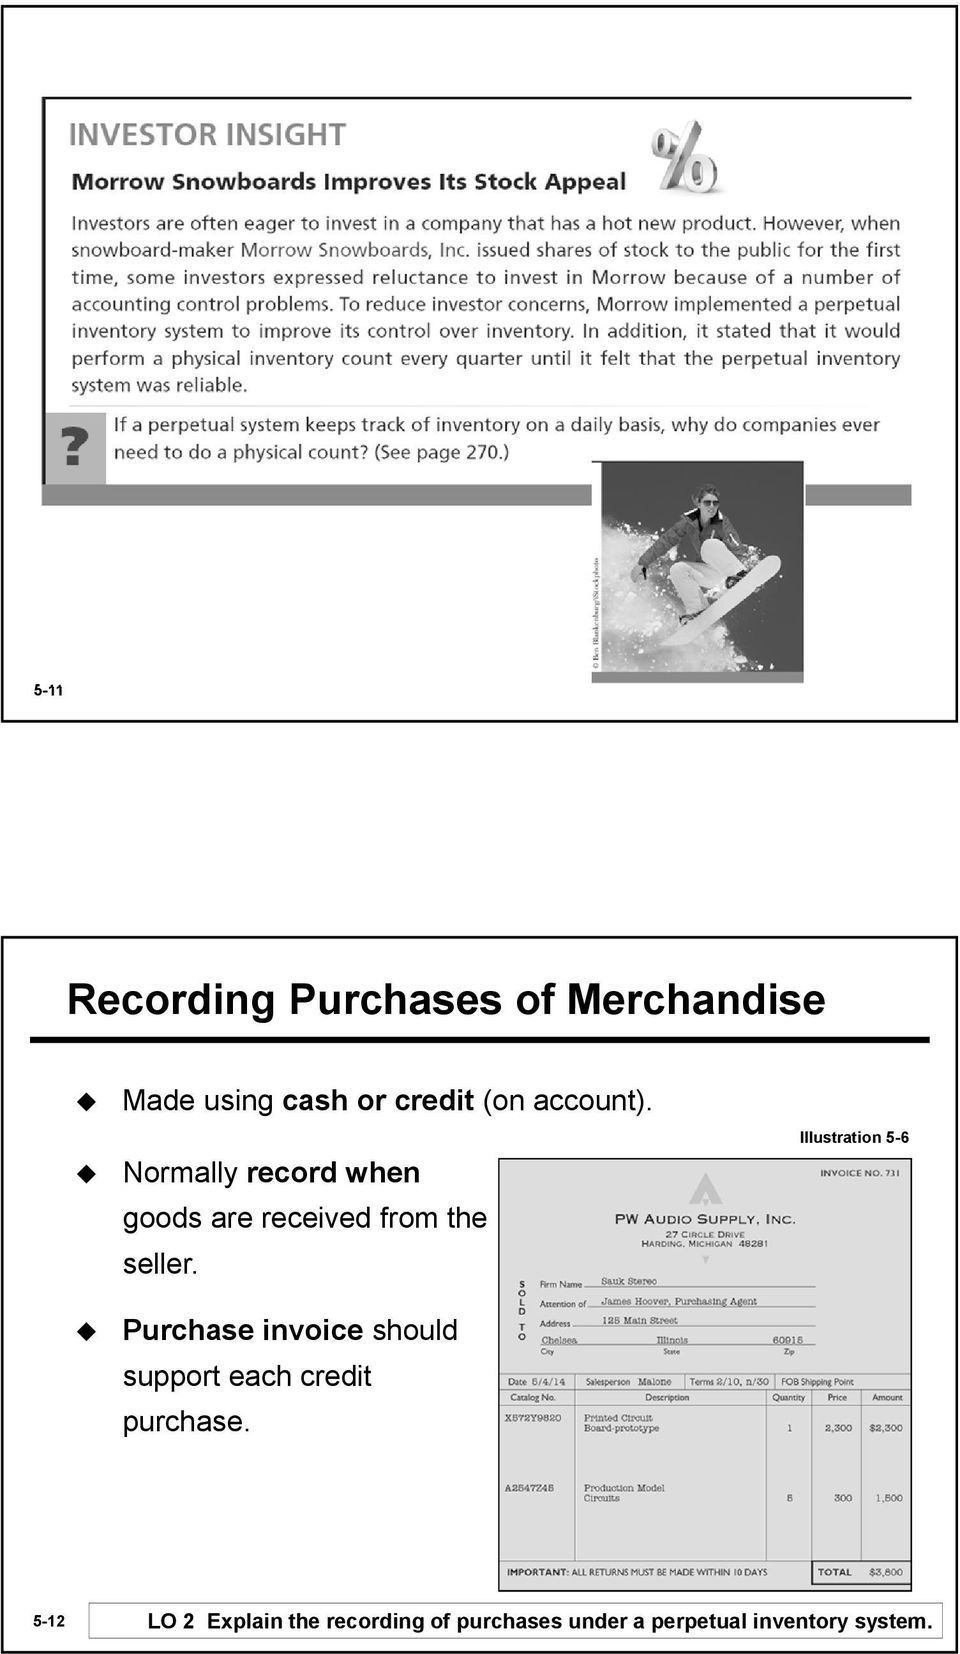 Illustration 5-6 Purchase invoice should support each credit purchase.